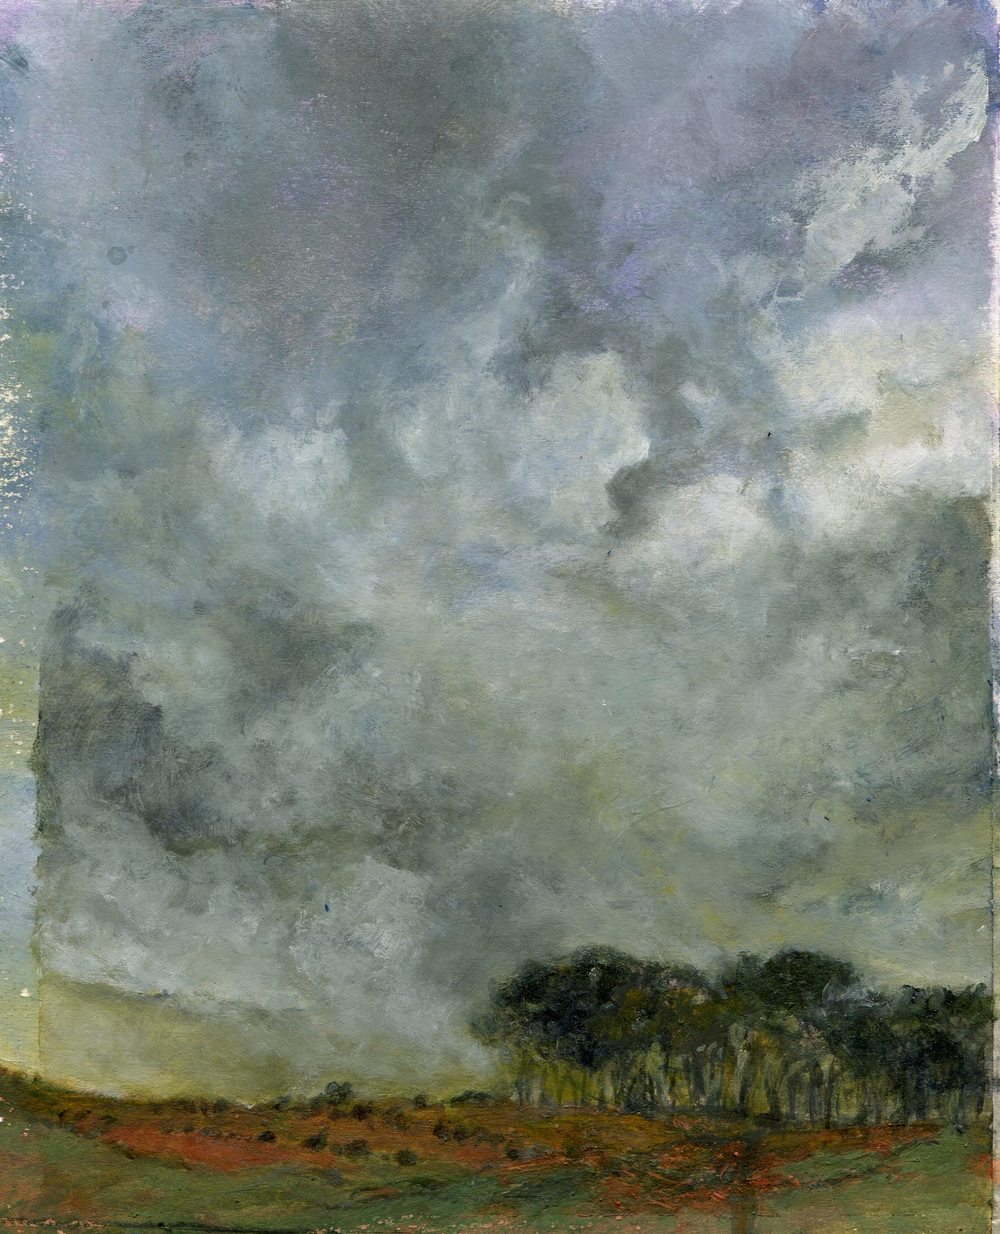 92b Jacobs, Shan - Landscape with Clouds, Mixed media.jpg